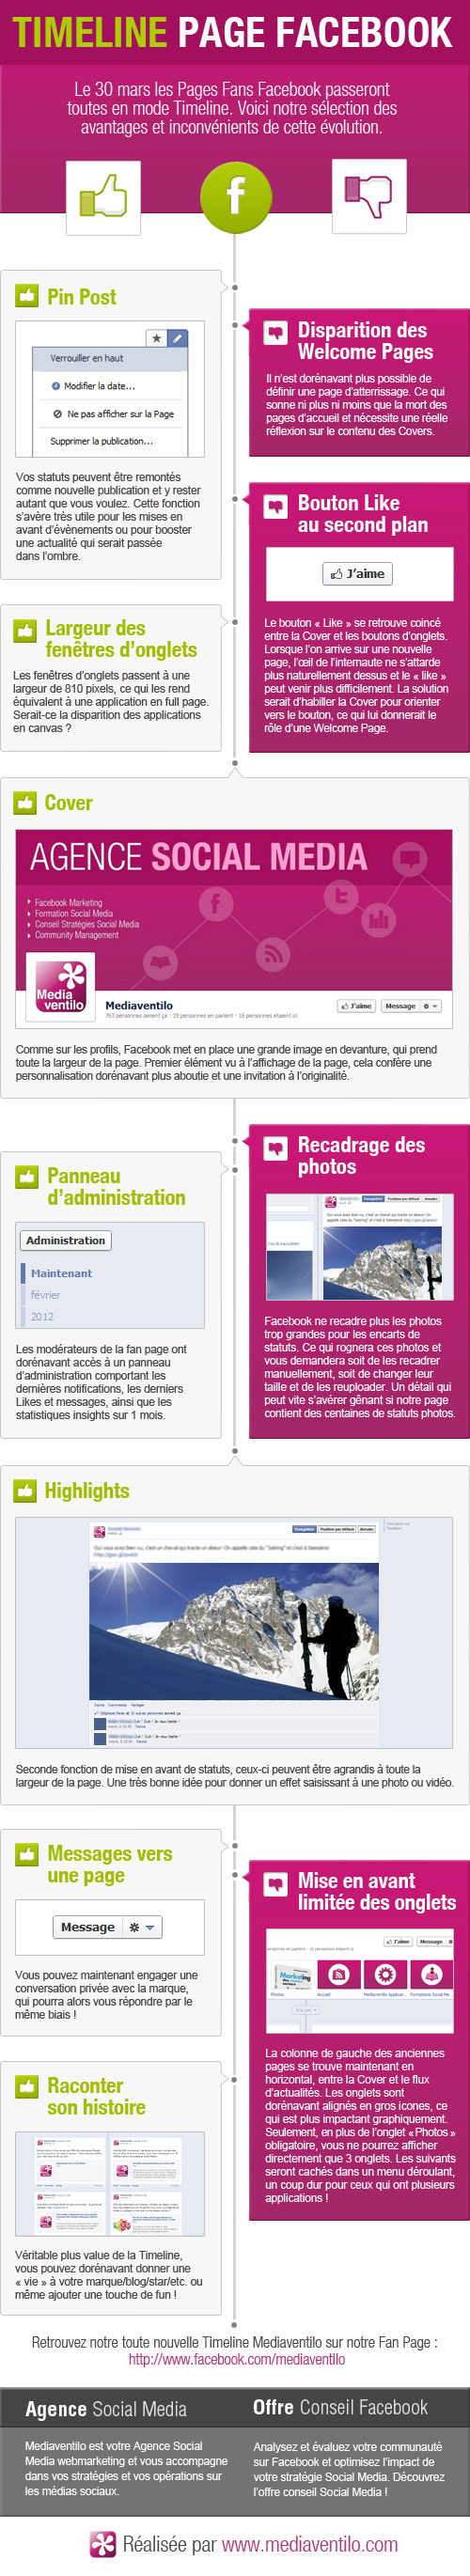 Infographie Timeline Facebook Mediaventilo [Infographie] Evolution de Facebook: arrive de la Timeline pour les Pages!